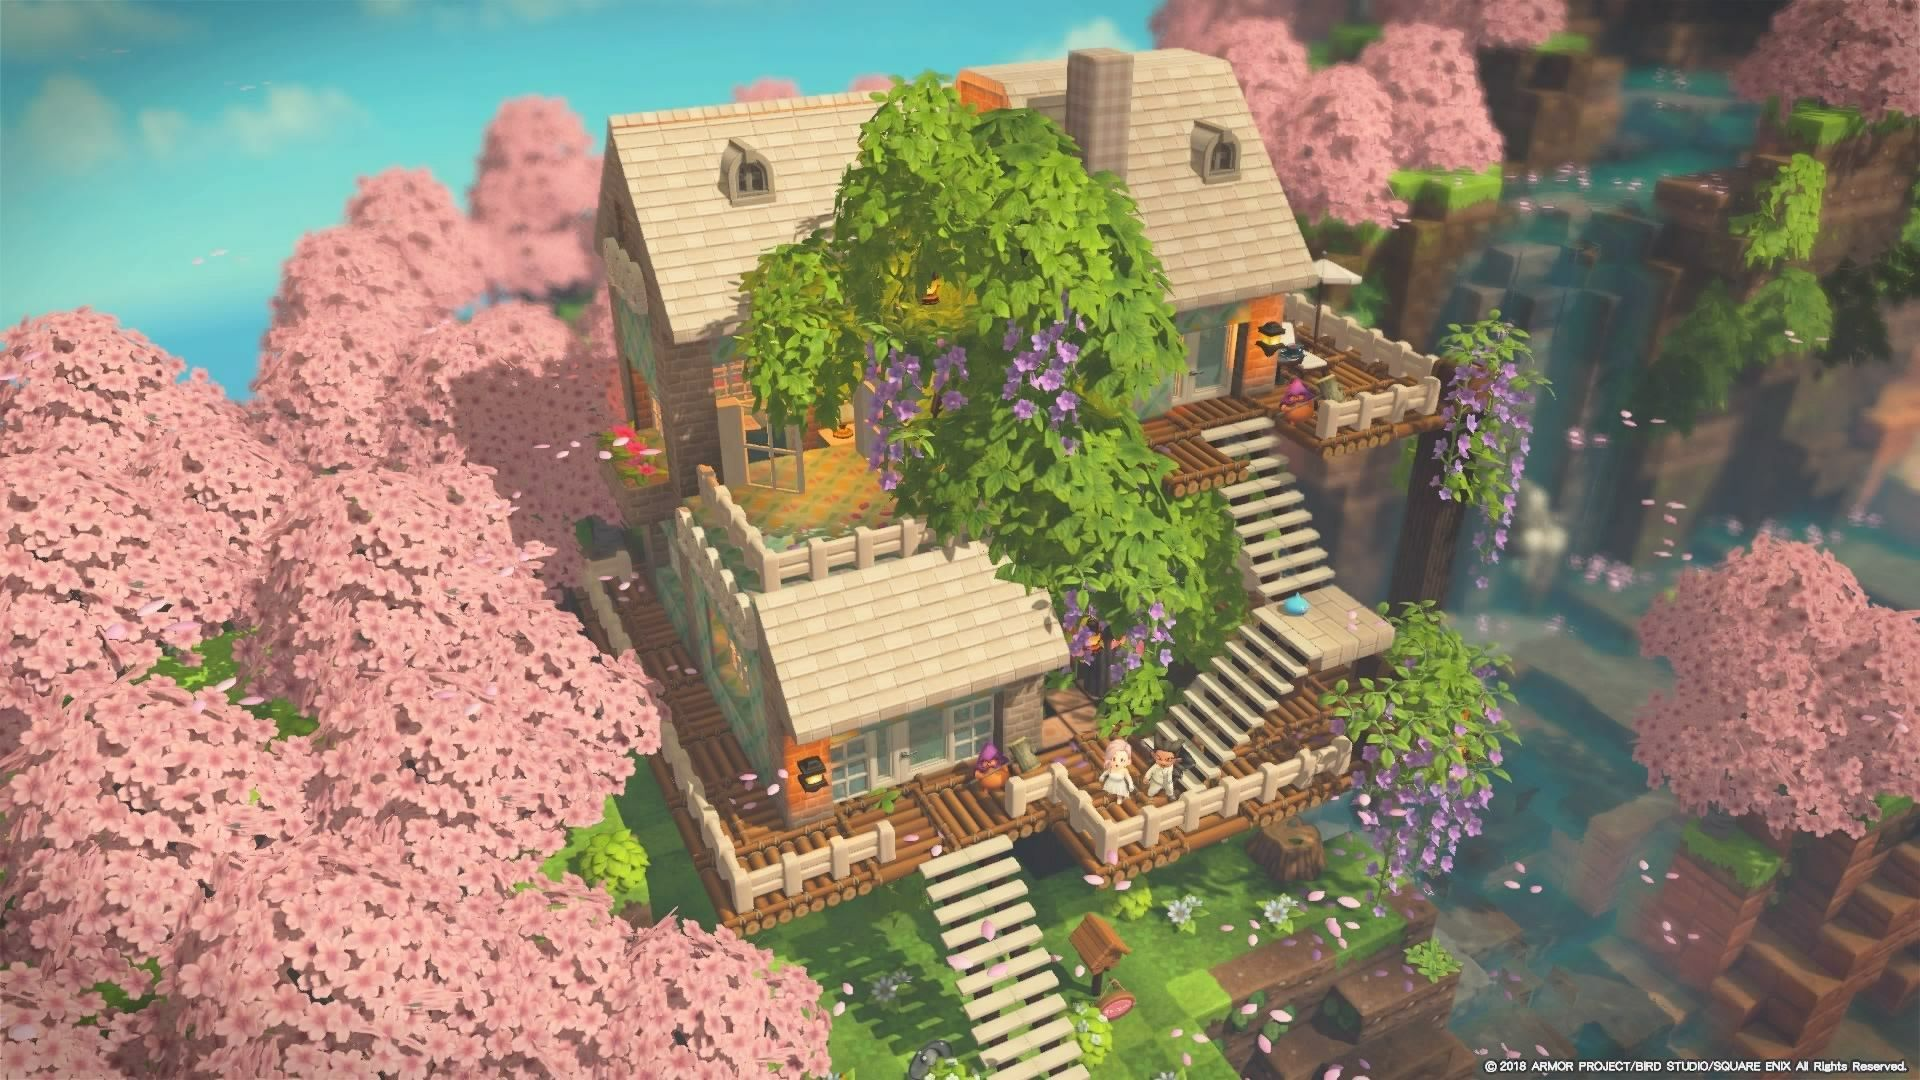 Builders Gallery Dragon Quest Builders 2 Square Enix In 2021 Cute Minecraft Houses Animal Crossing Game Dragon Quest